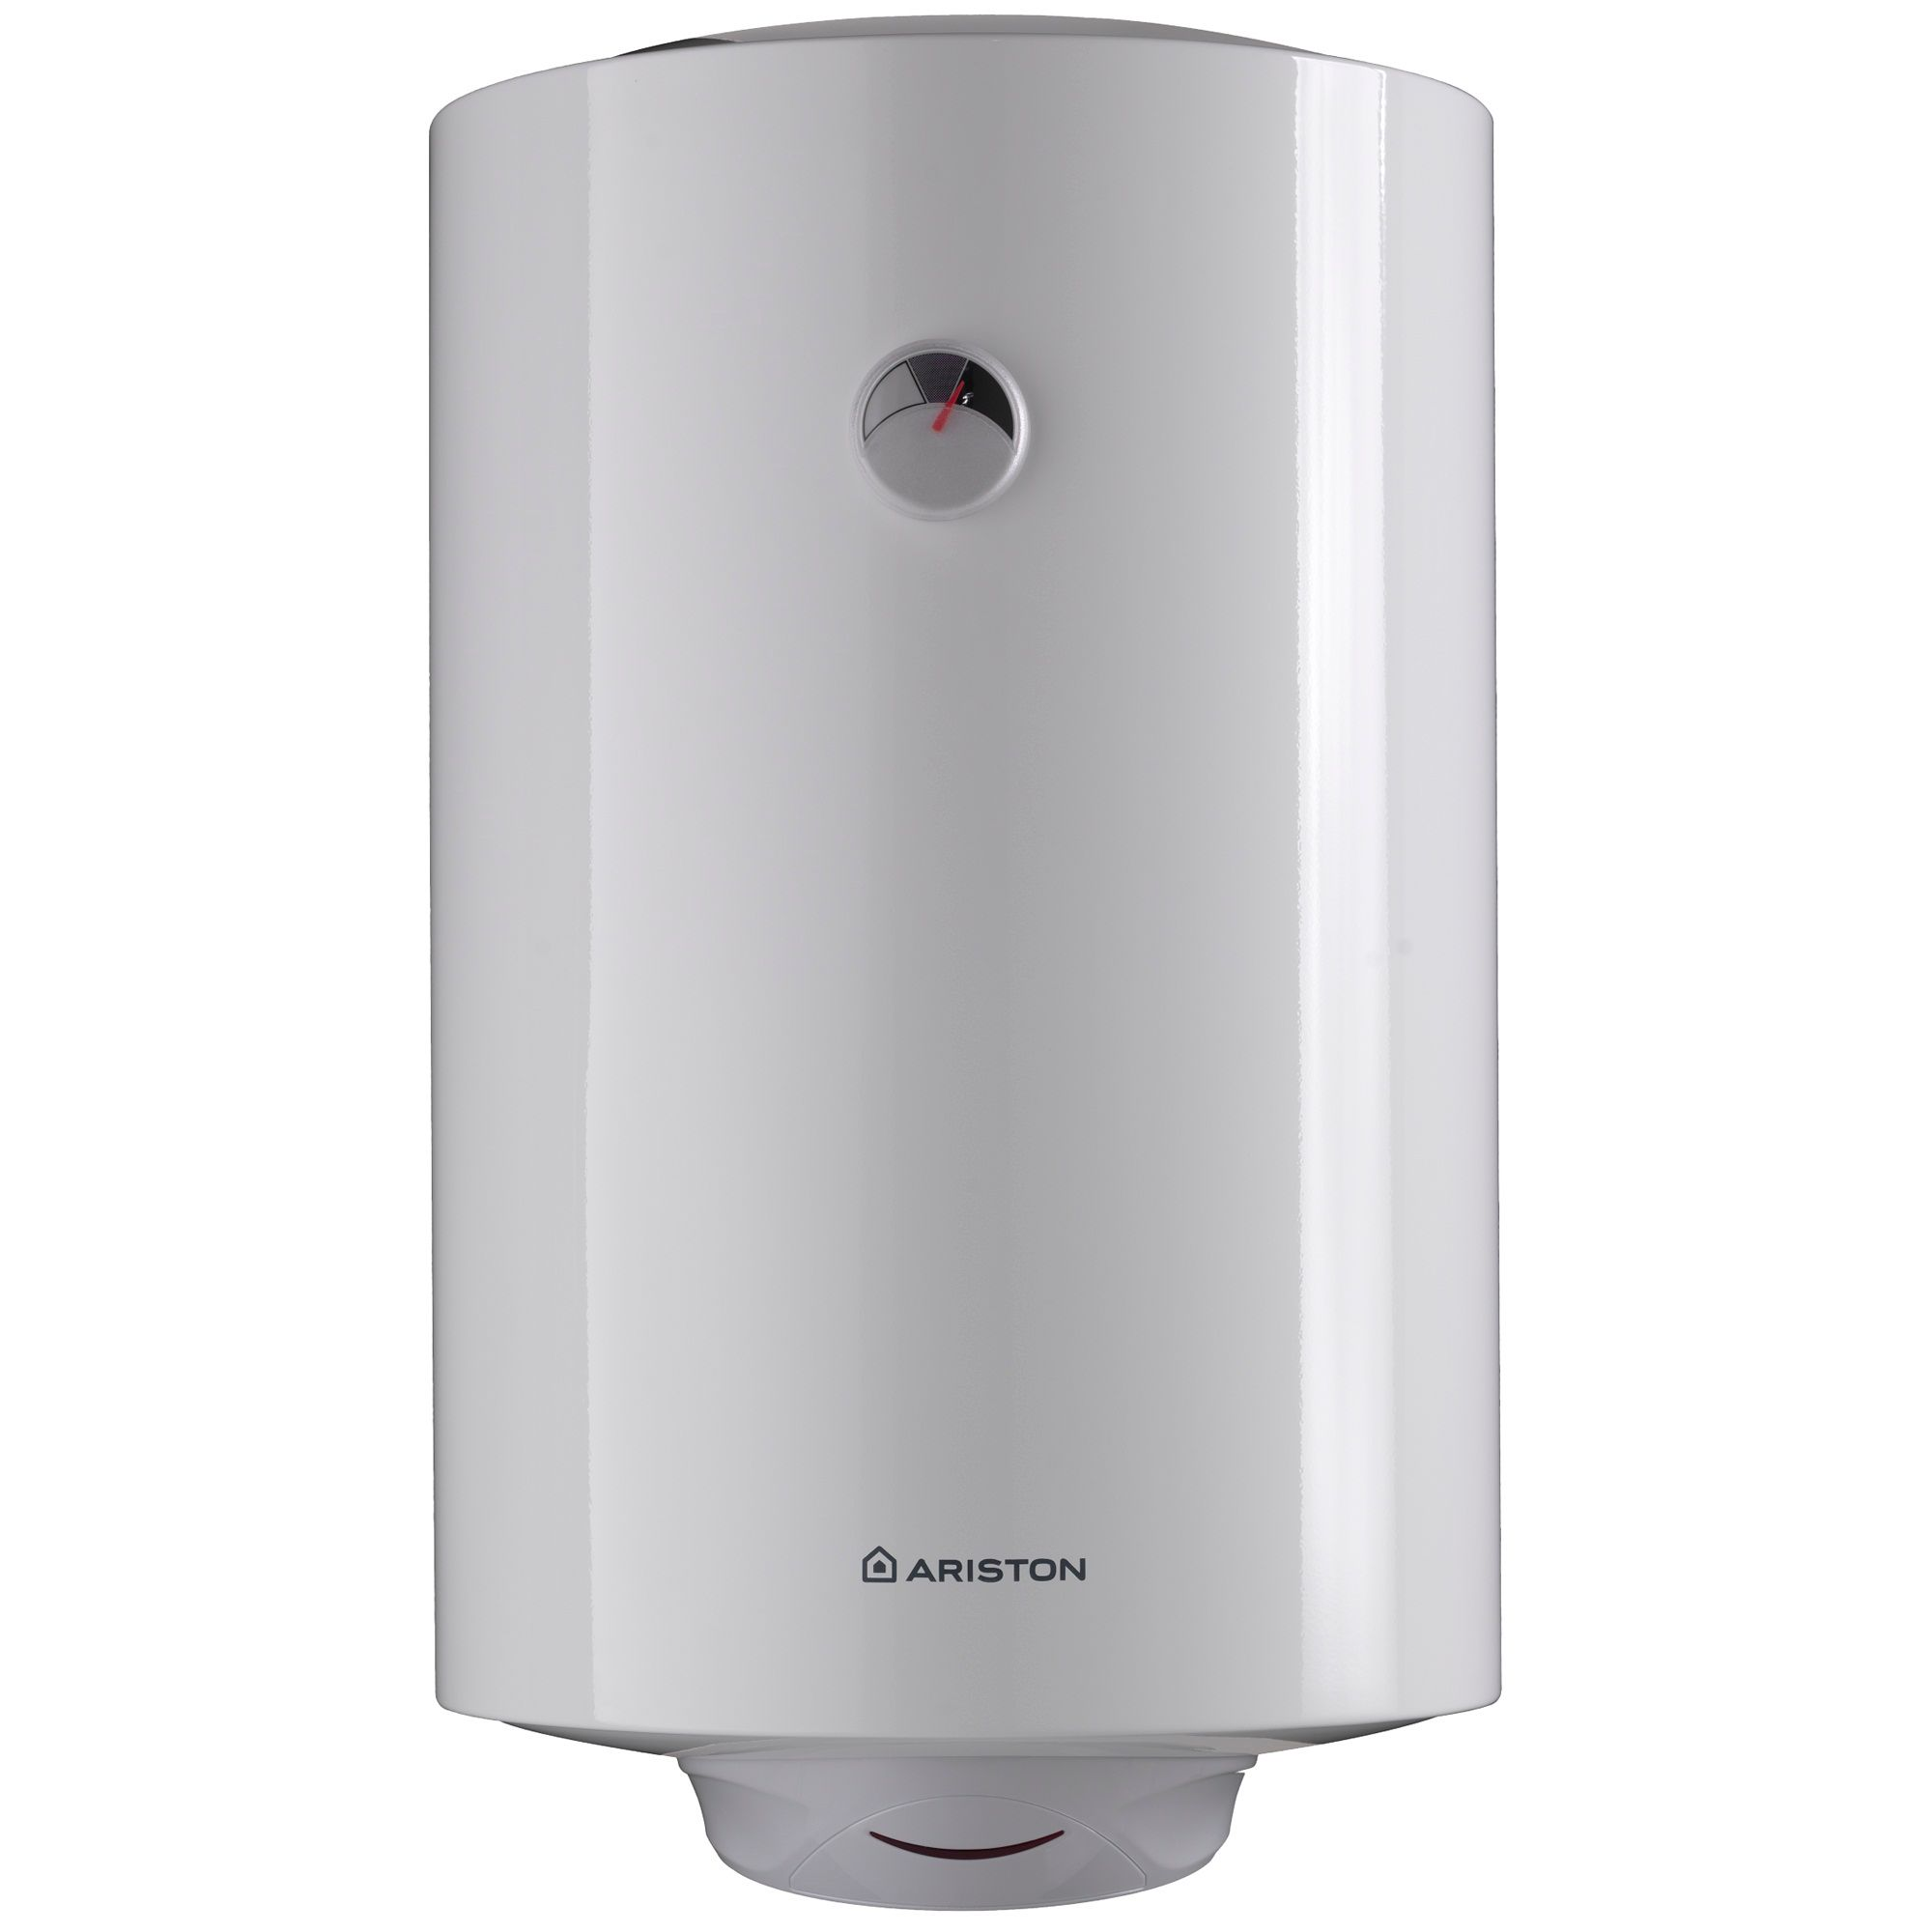 Boiler termoelectric Ariston Pro R VTS 150, 2000 W, 150 l, 0.8 Mpa, Serpentina pe partea stanga, Alb imagine fornello.ro